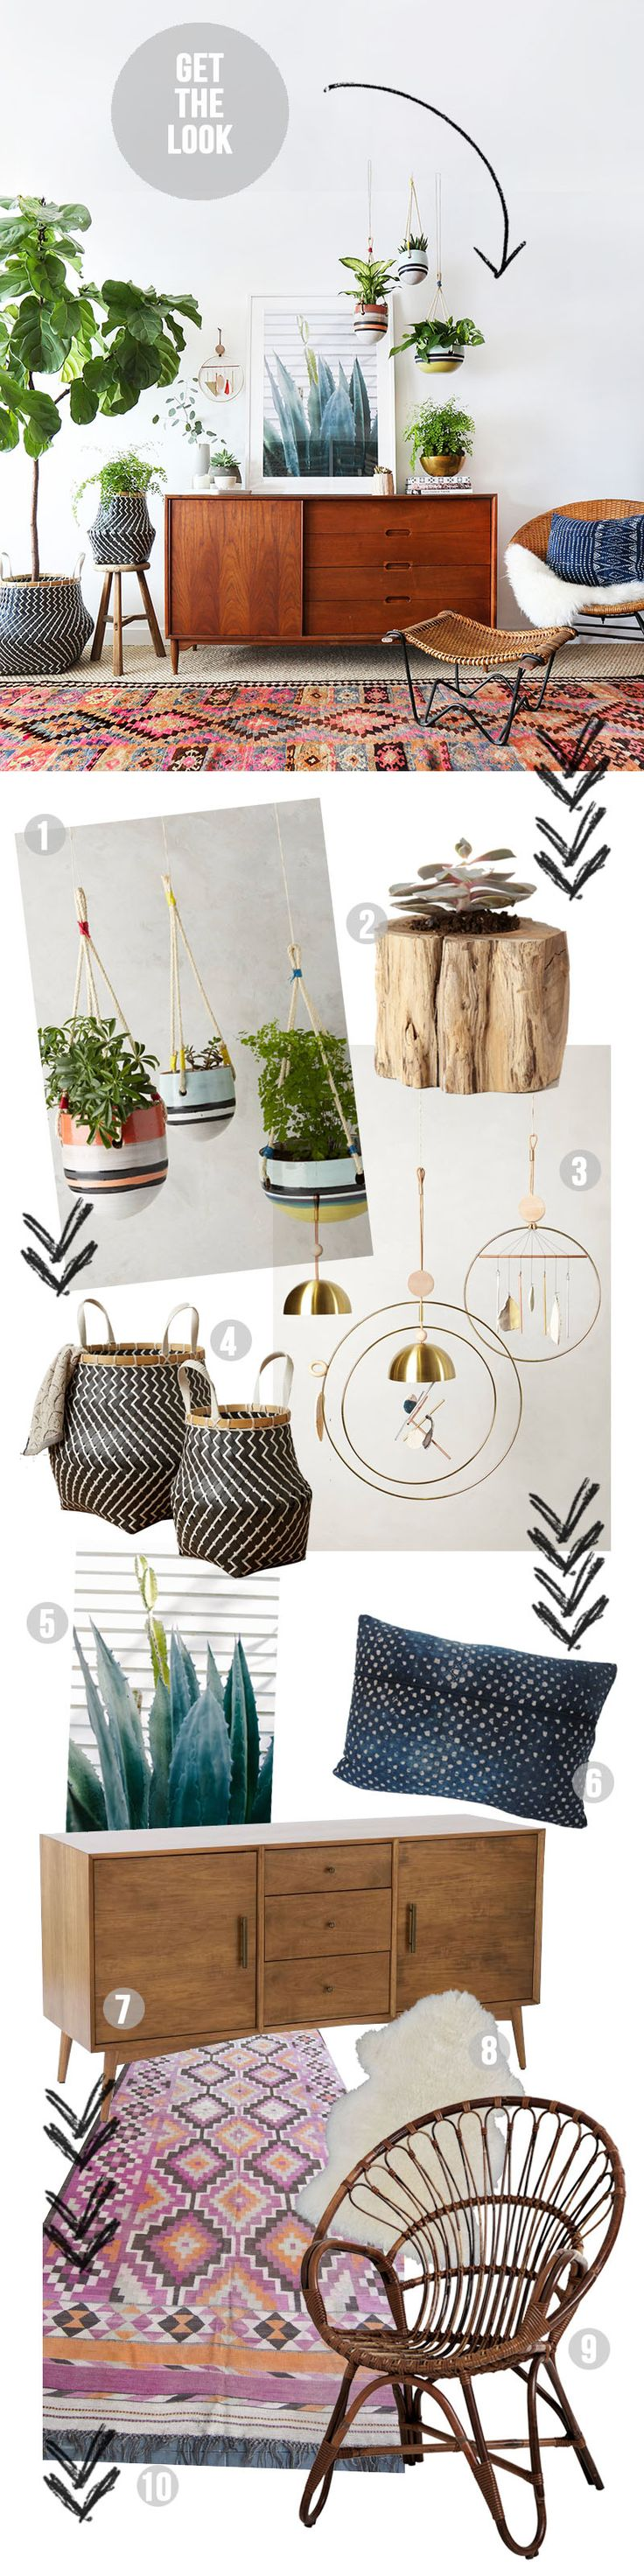 Amber Interiors - Get the Look - Hanging Garden…